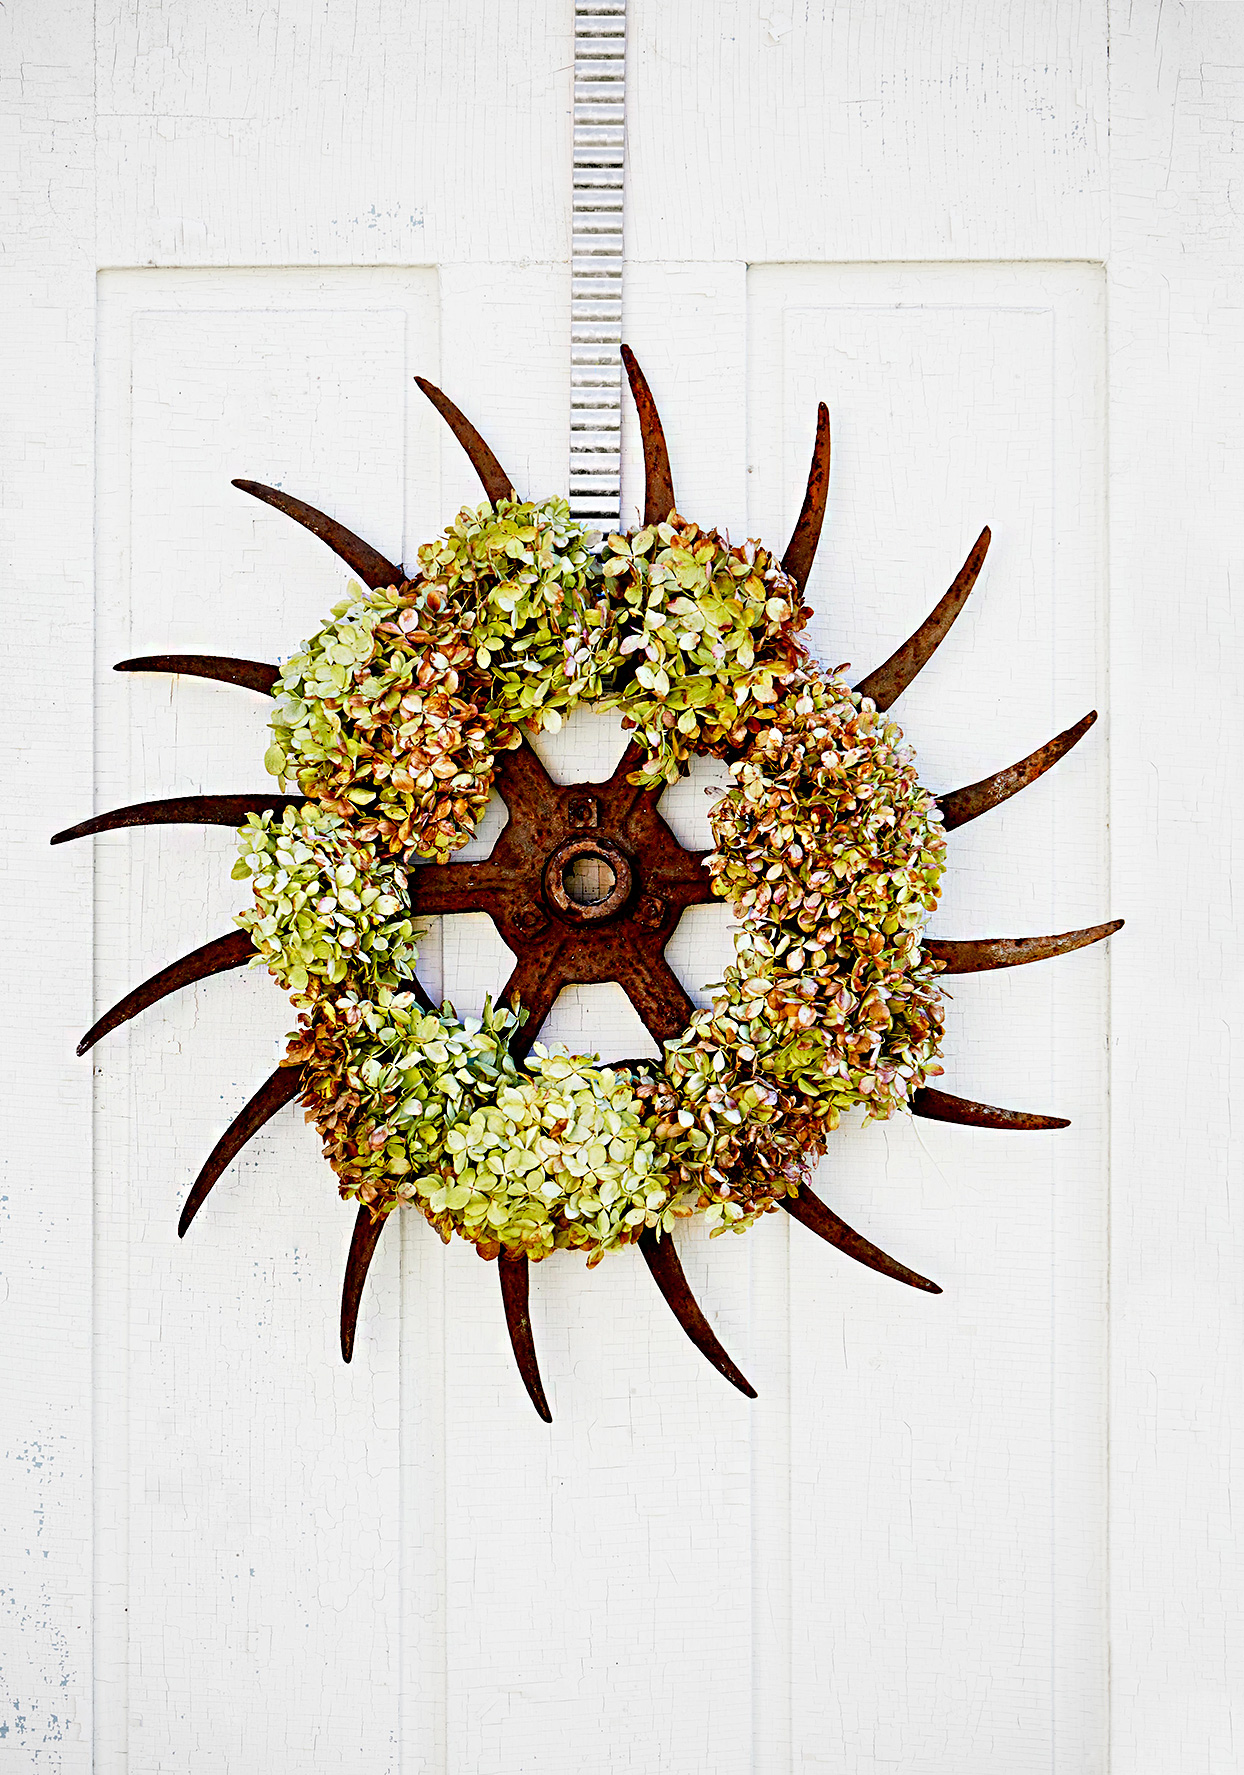 Circular metal wreath with plants